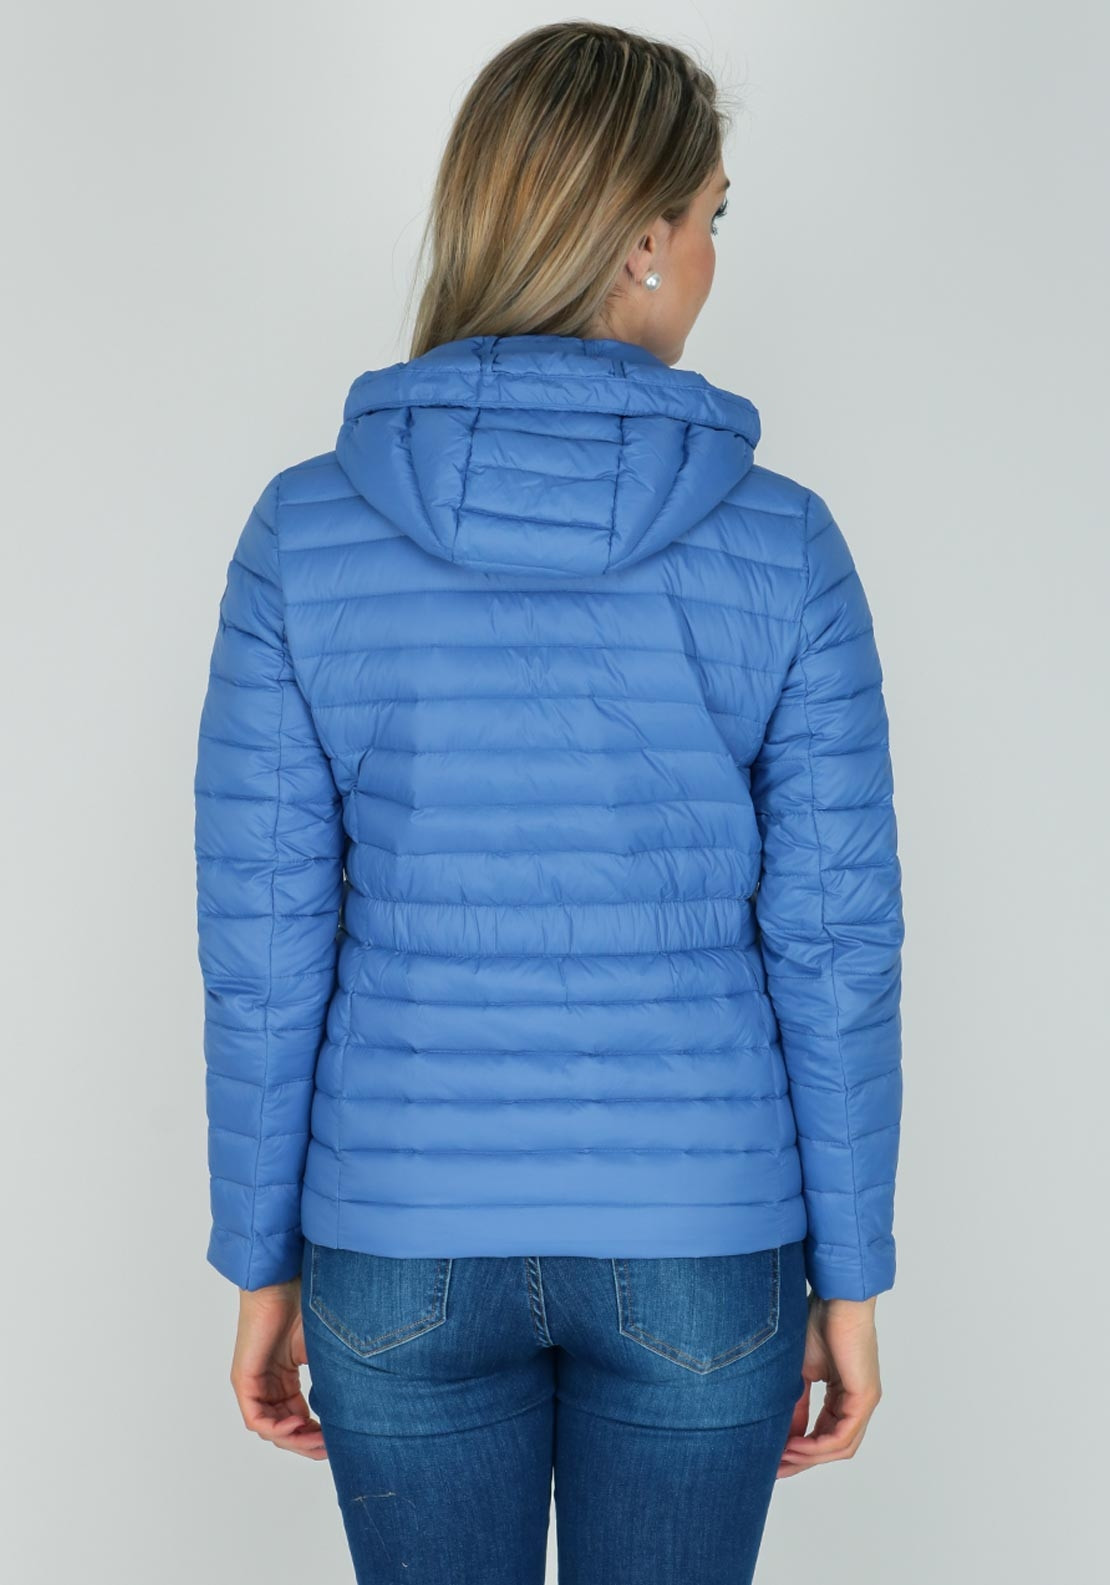 Tommy Hilfiger Womens New Isaac Quilted Jacket Blue